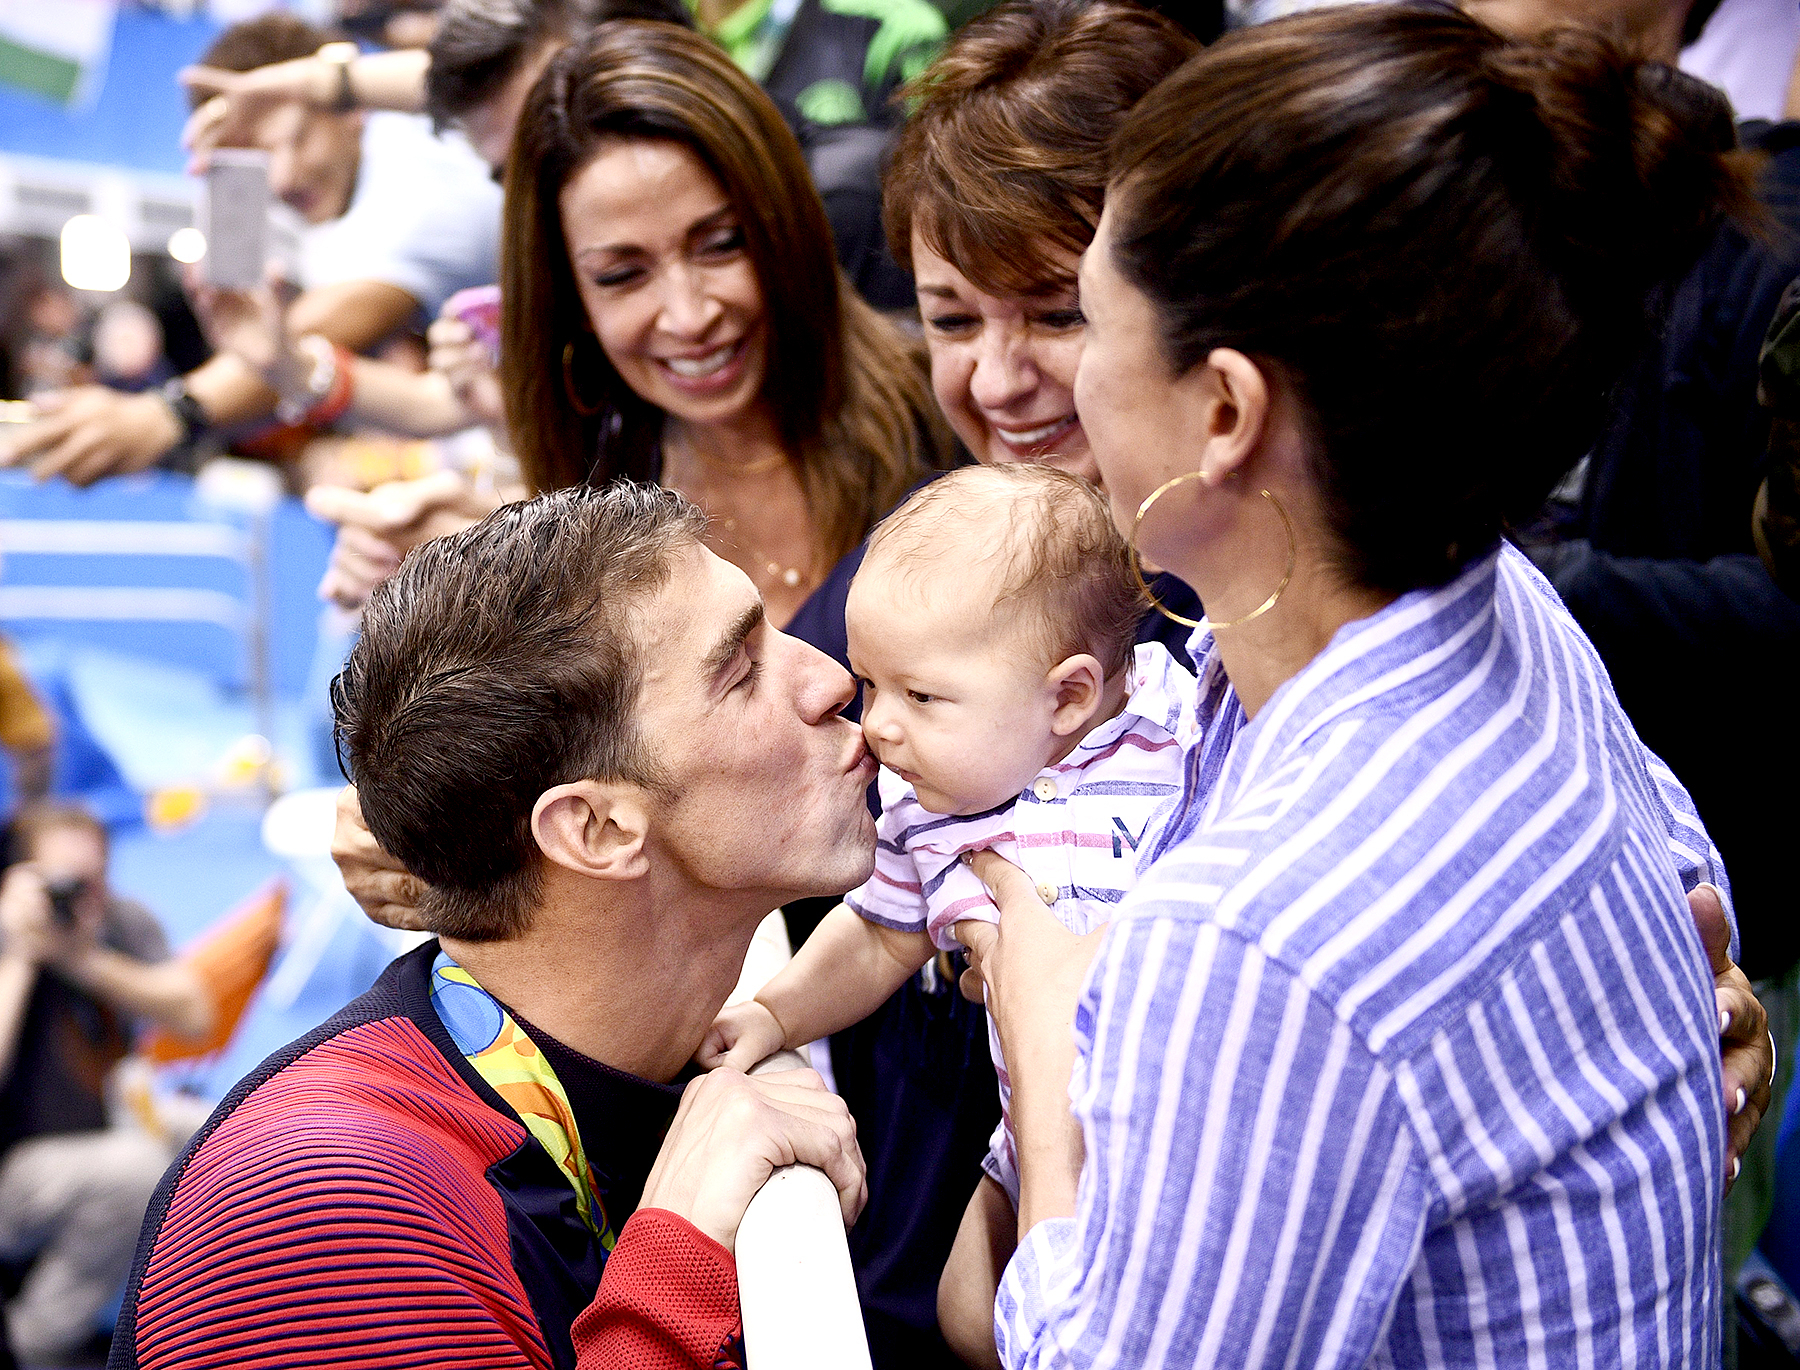 USA's Michael Phelps (L) kisses his son Boomer next to his partner Nicole Johnson (R) and mother Deborah (C) after he won the Men's 200m Butterfly Final during the swimming event at the Rio 2016 Olympic Games at the Olympic Aquatics Stadium in Rio de Janeiro on August 9, 2016.